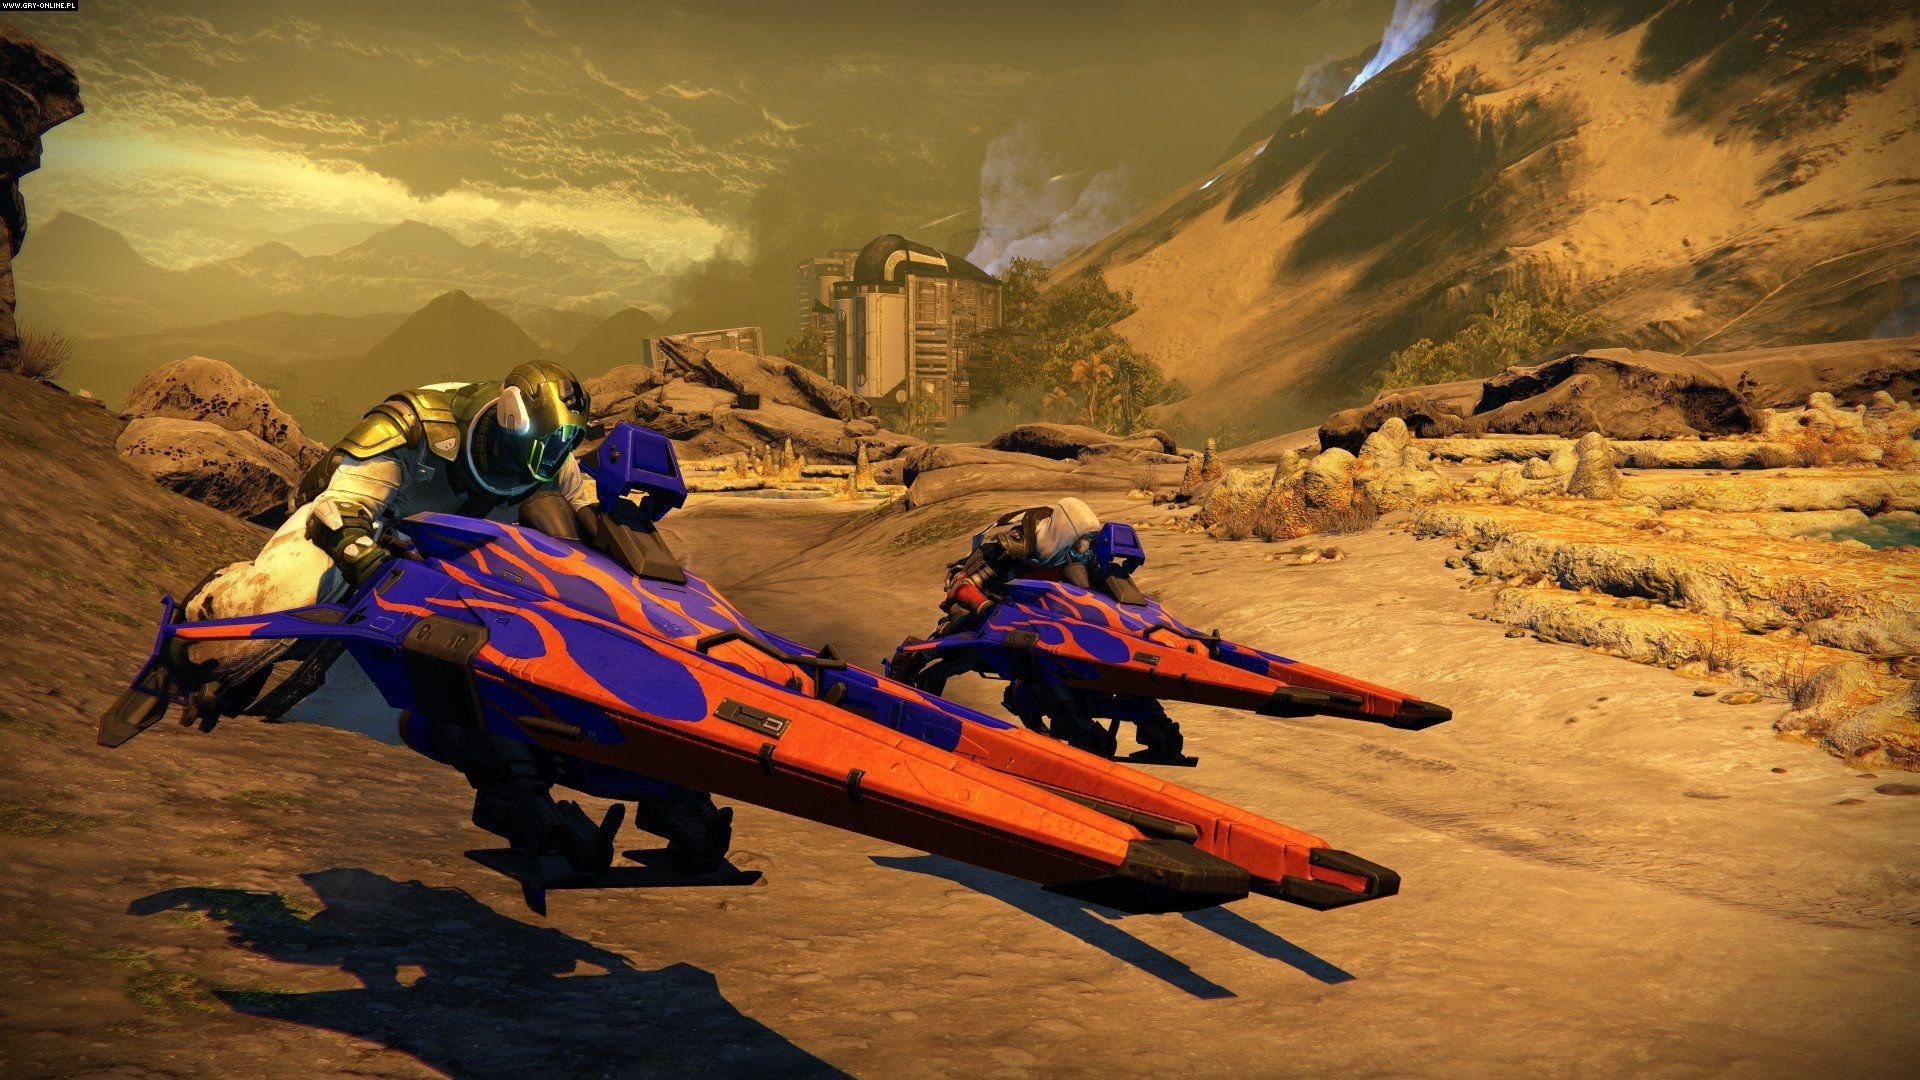 Destiny: The Dark Below PS4, PS3, X360, XONE Gry Screen 6/12, Bungie Software, Activision Blizzard